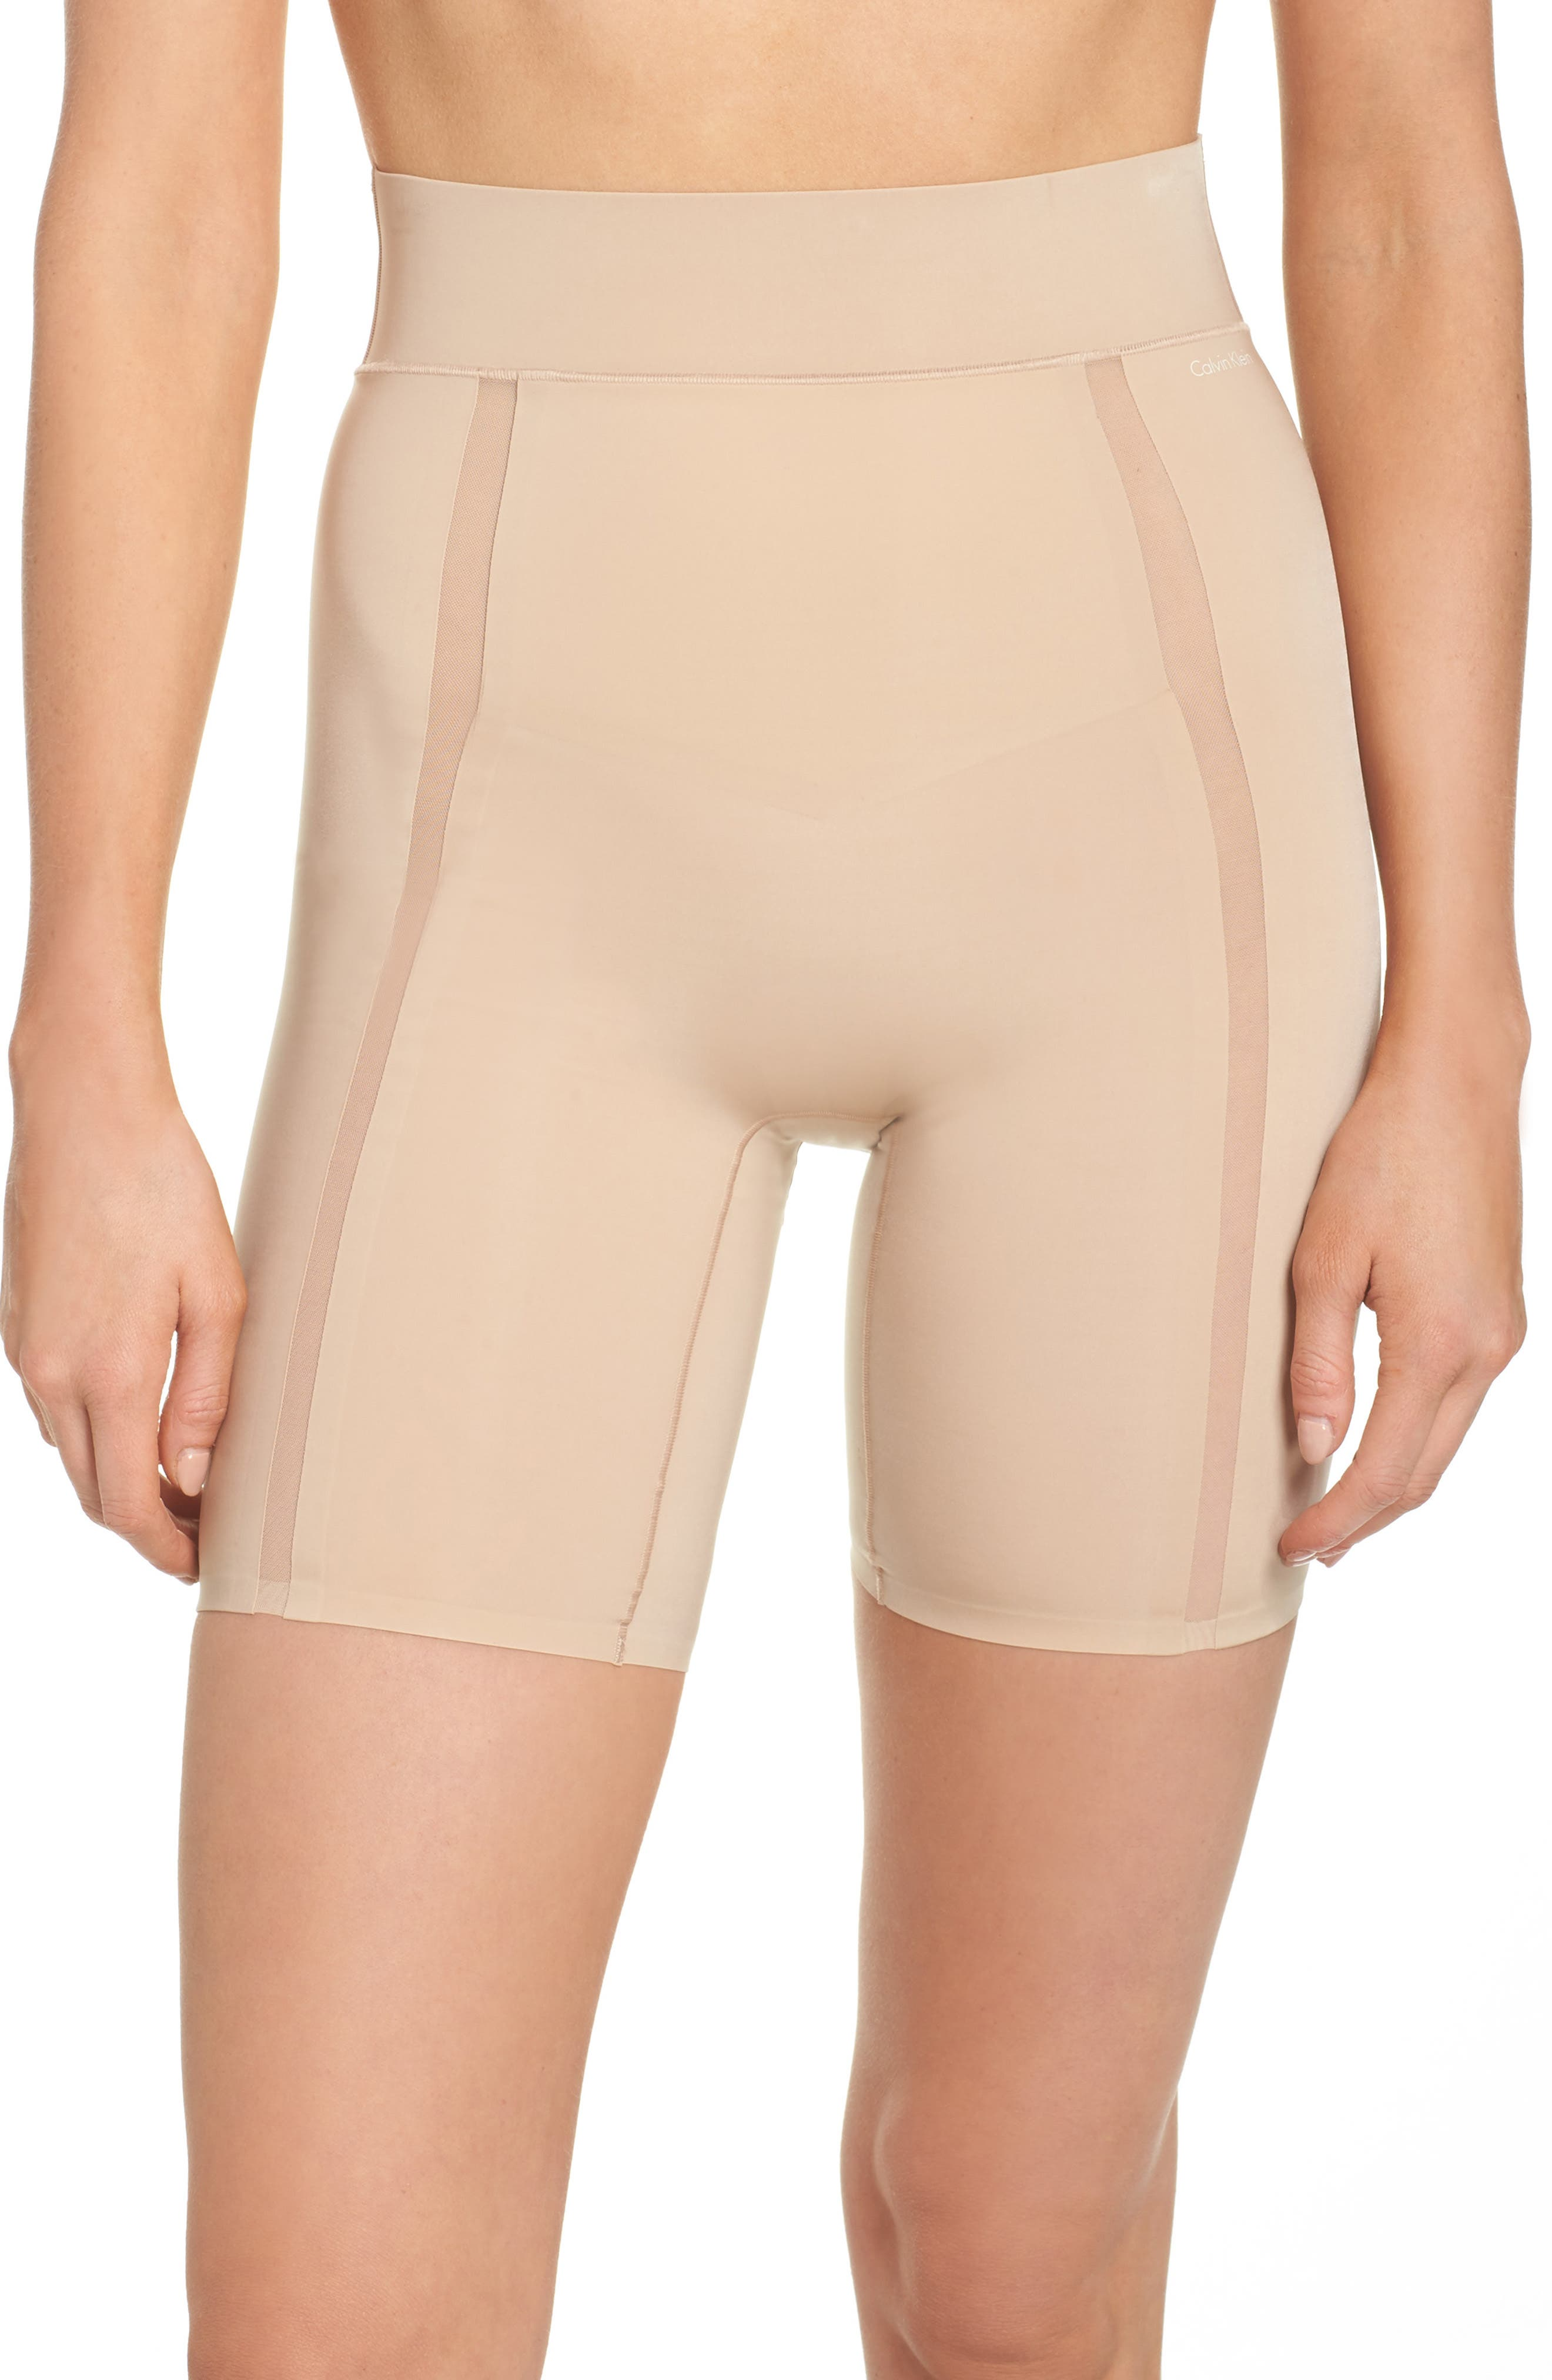 Sculpted Shapewear Thigh Shaper,                         Main,                         color, Bare